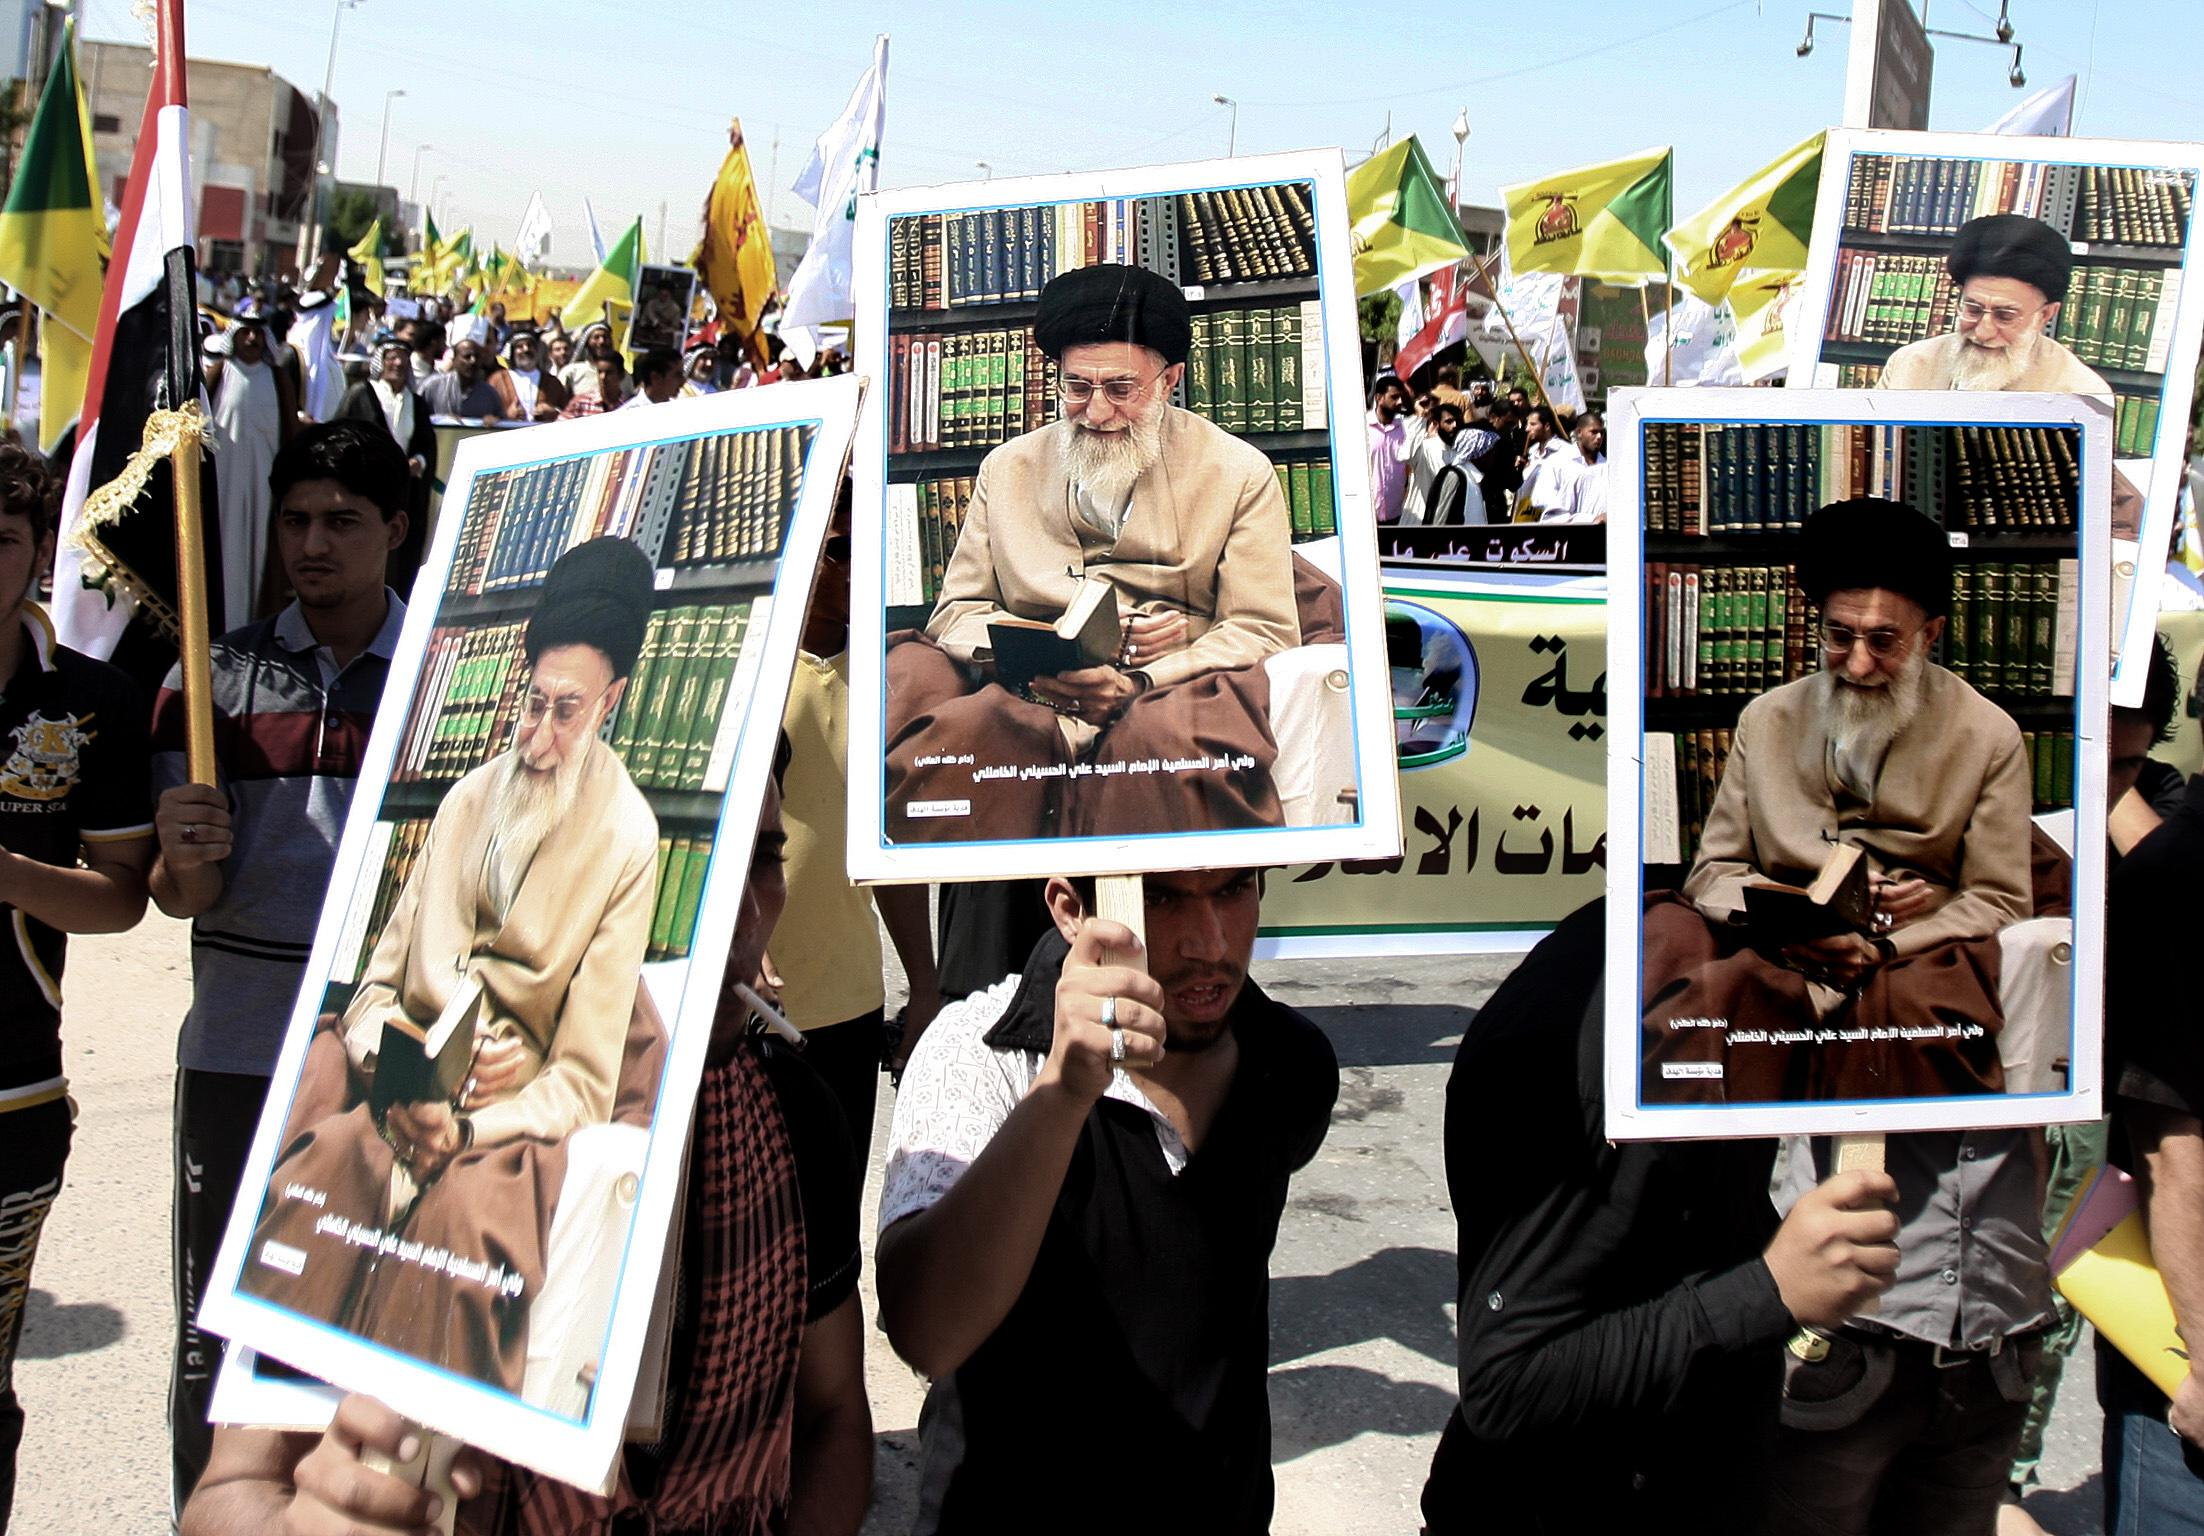 In this Sept. 21, 2012, photo, Iraqis chant slogans as they hold posters of Iran's supreme leader Ayatollah Khamenei during a protest in Basra, 340 miles (547 kilometers) southeast of Baghdad, Iraq, as part of widespread anger across the Muslim world about a film ridiculing Islam's Prophet Muhammad. After years of growing influence, a new sign of Iran's presence in Iraq has hit the streets. Thousands of signs, that is, depicting Iran's supreme leader gently smiling to a population once mobilized against the Islamic Republic in eight years of war. (AP Photo/Nabil al-Jurani)